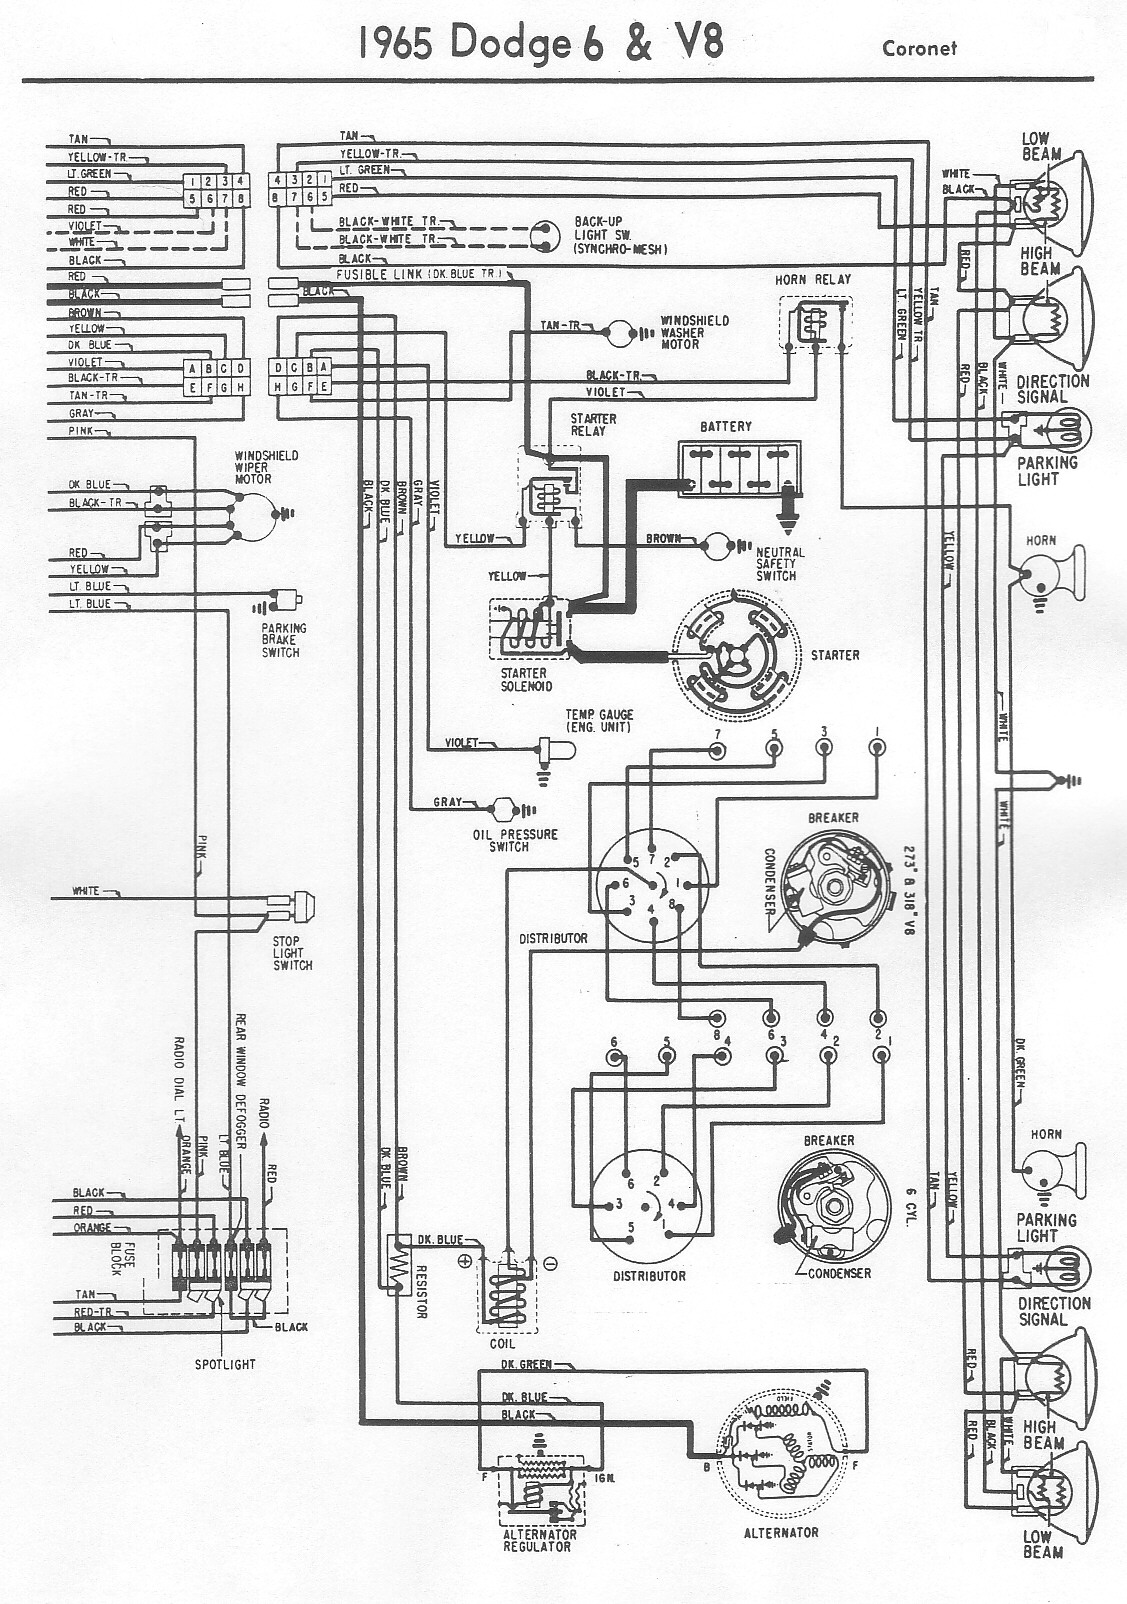 1972 chevelle wiring diagram ansisme chemicals used in wastewater, Wiring diagram